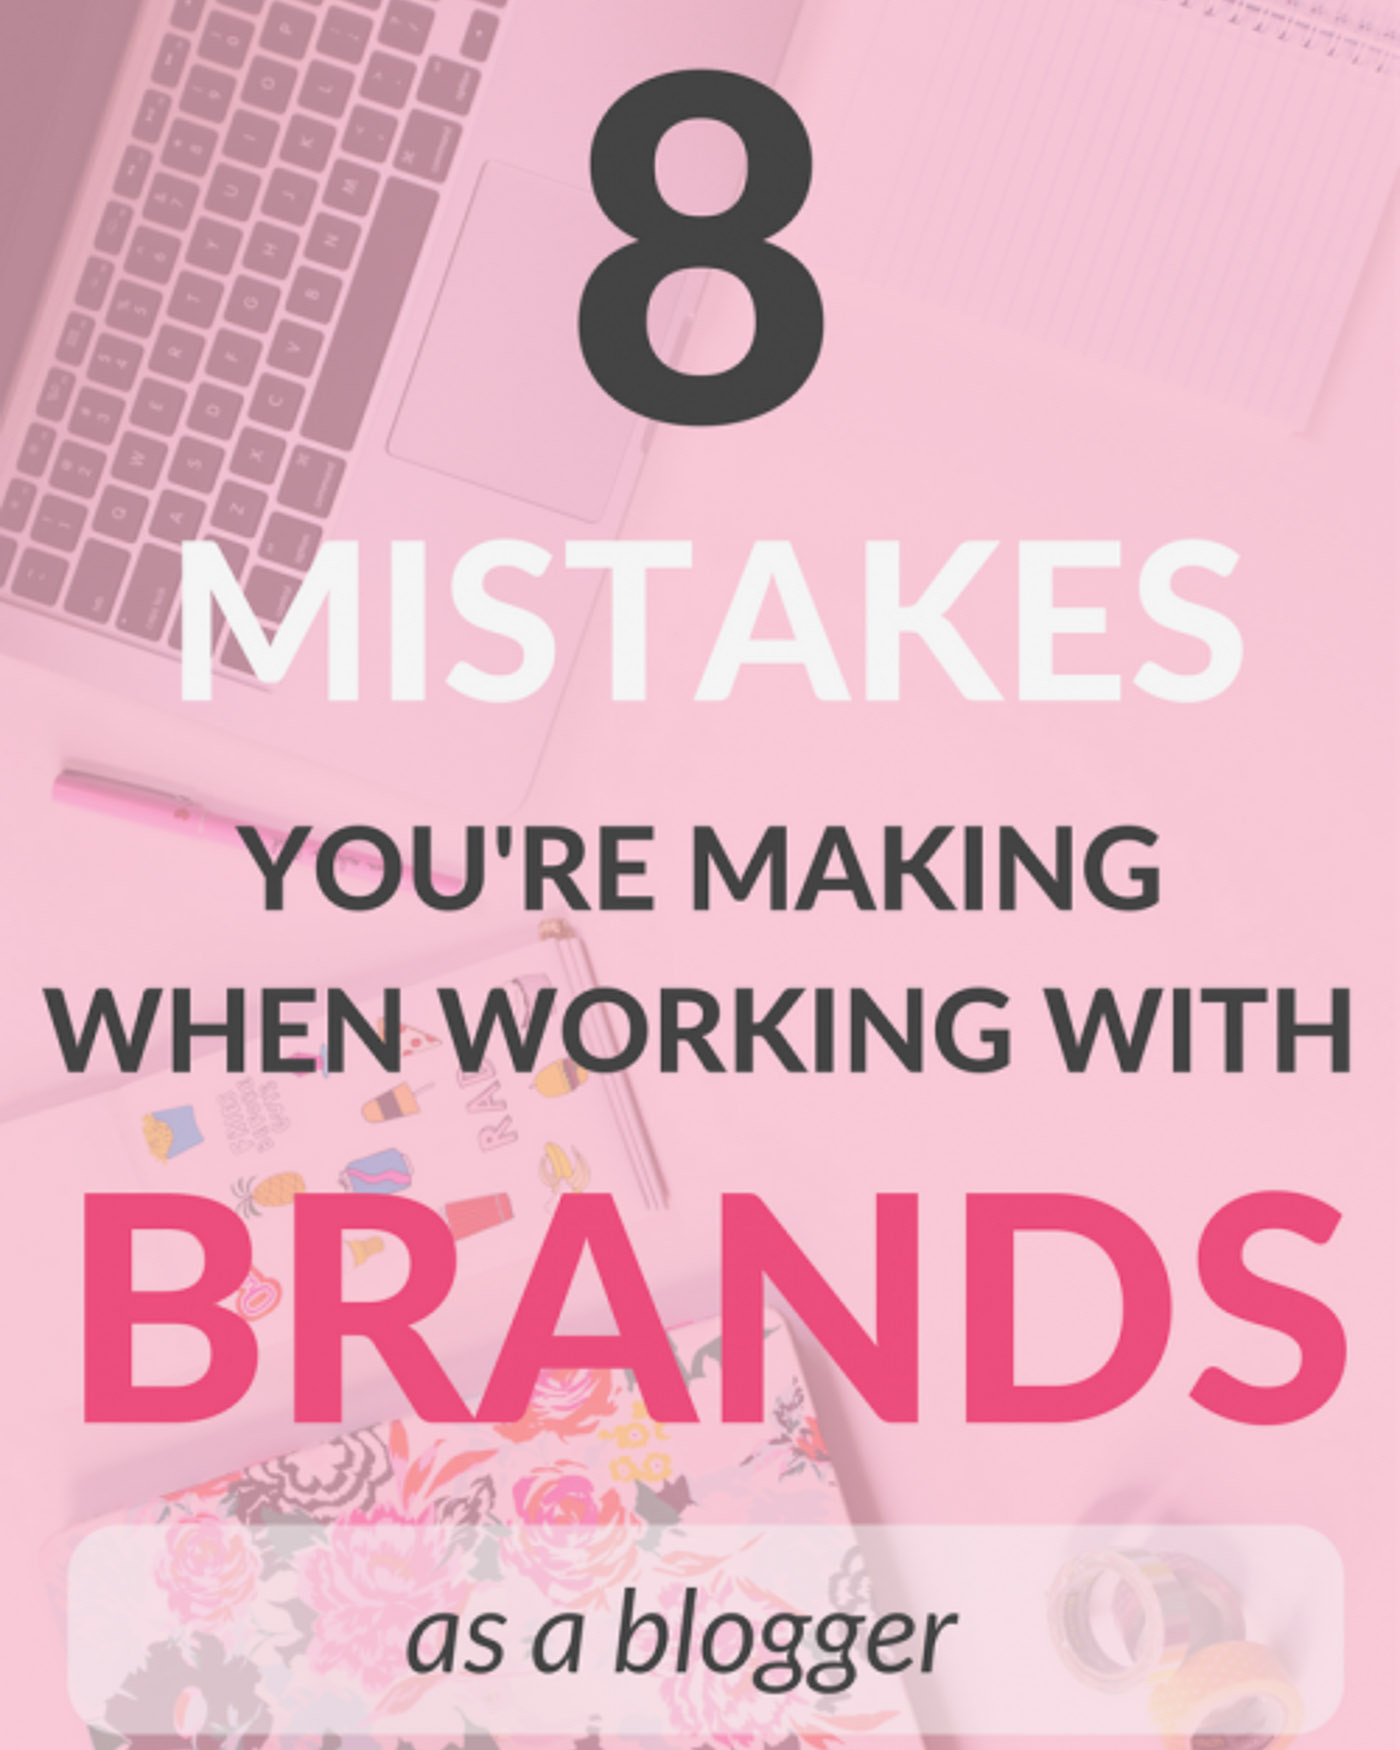 8 Mistakes You're Making When Working With Brands - The Blog Societies